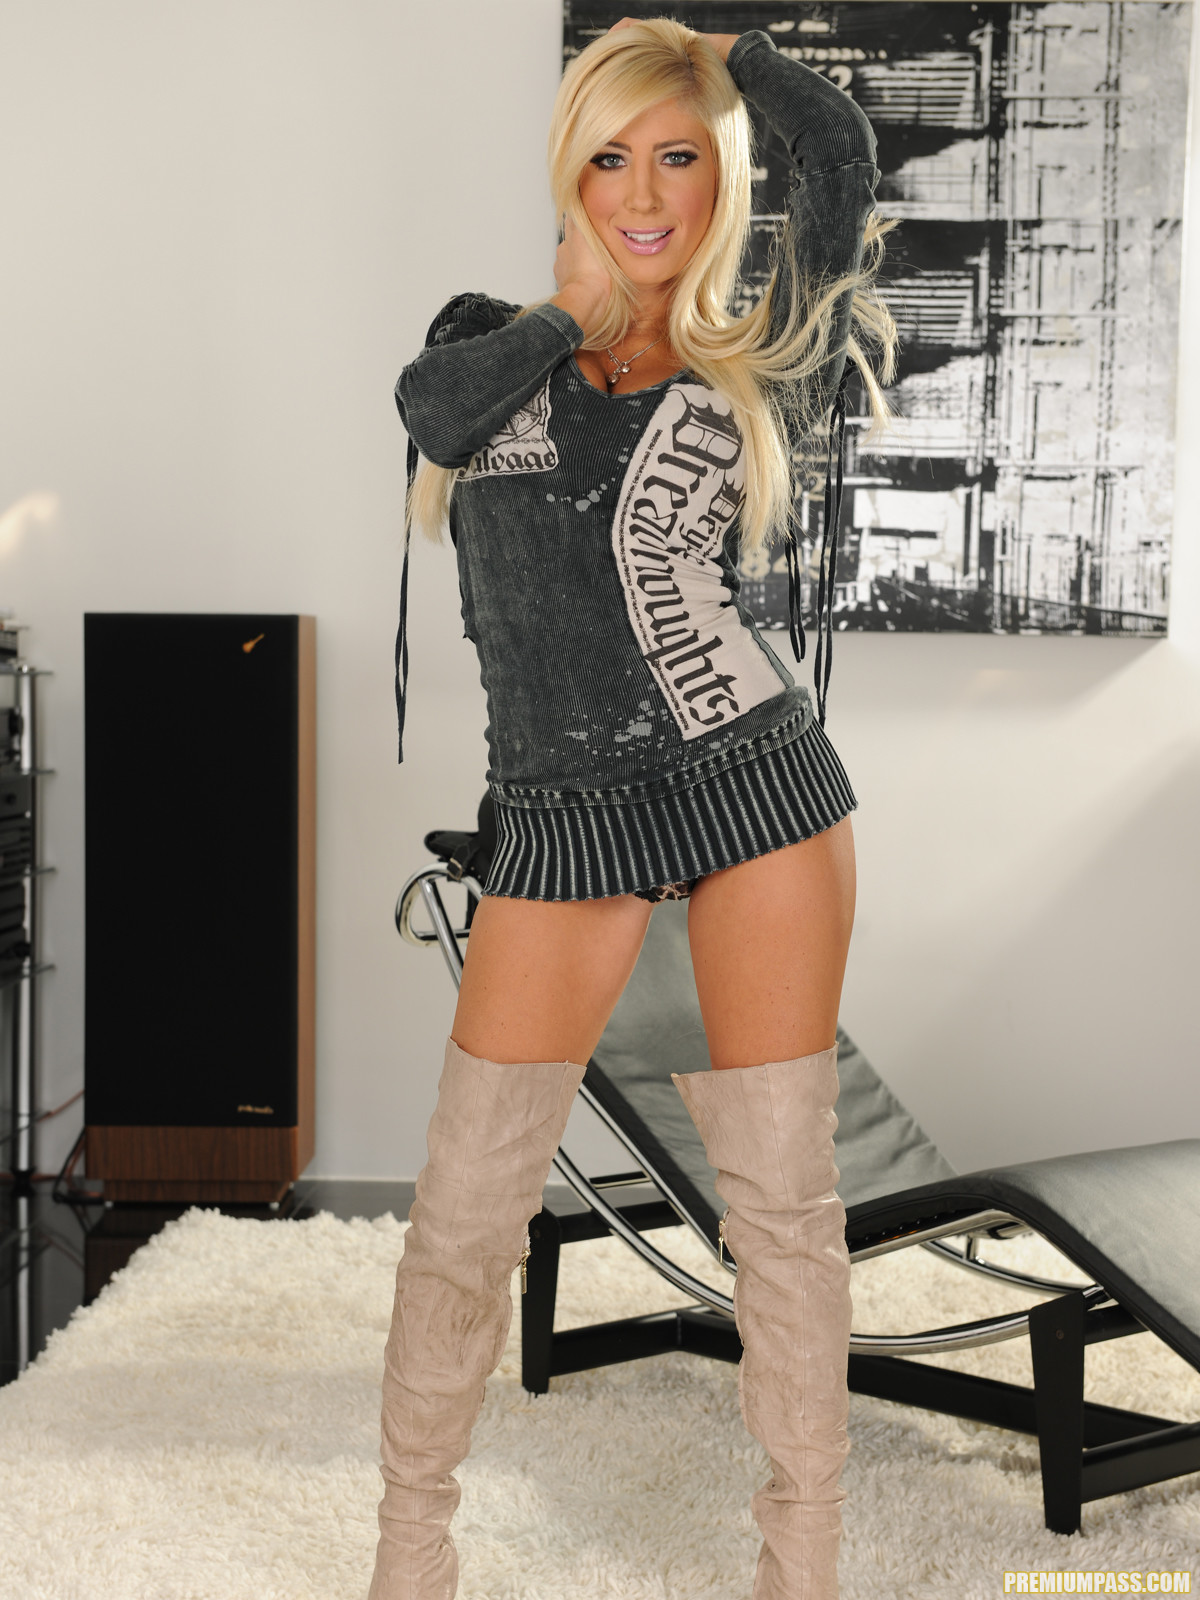 Tasha Reign Wearing Nothing But Thigh-High Boots 56444-3729